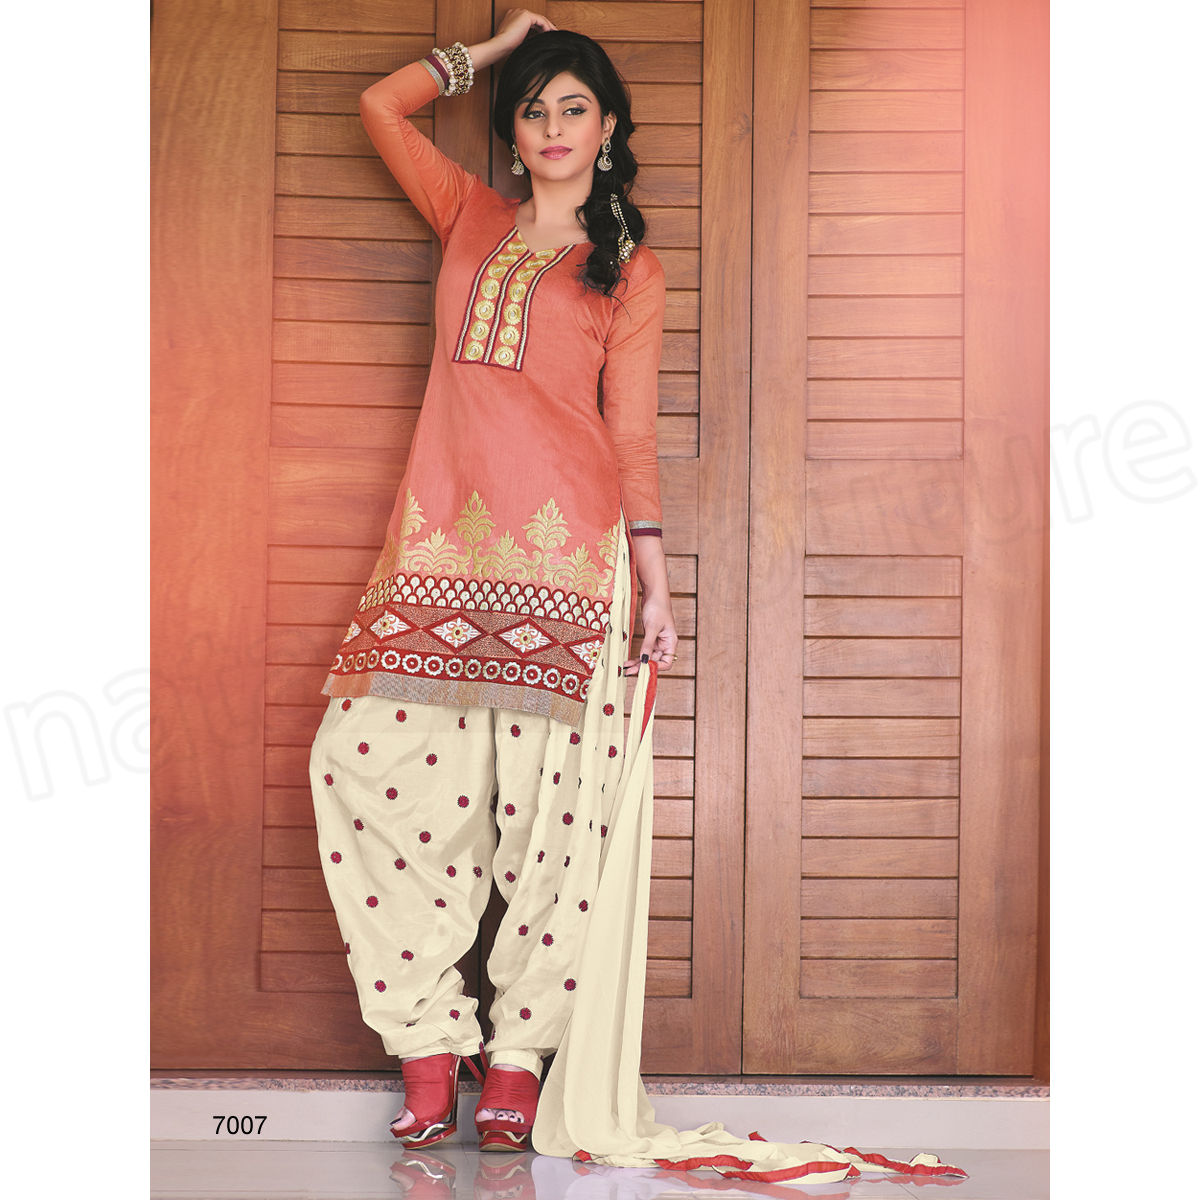 Latest Indian Patiala shalwar kameez fashion 2015-2016 (28)